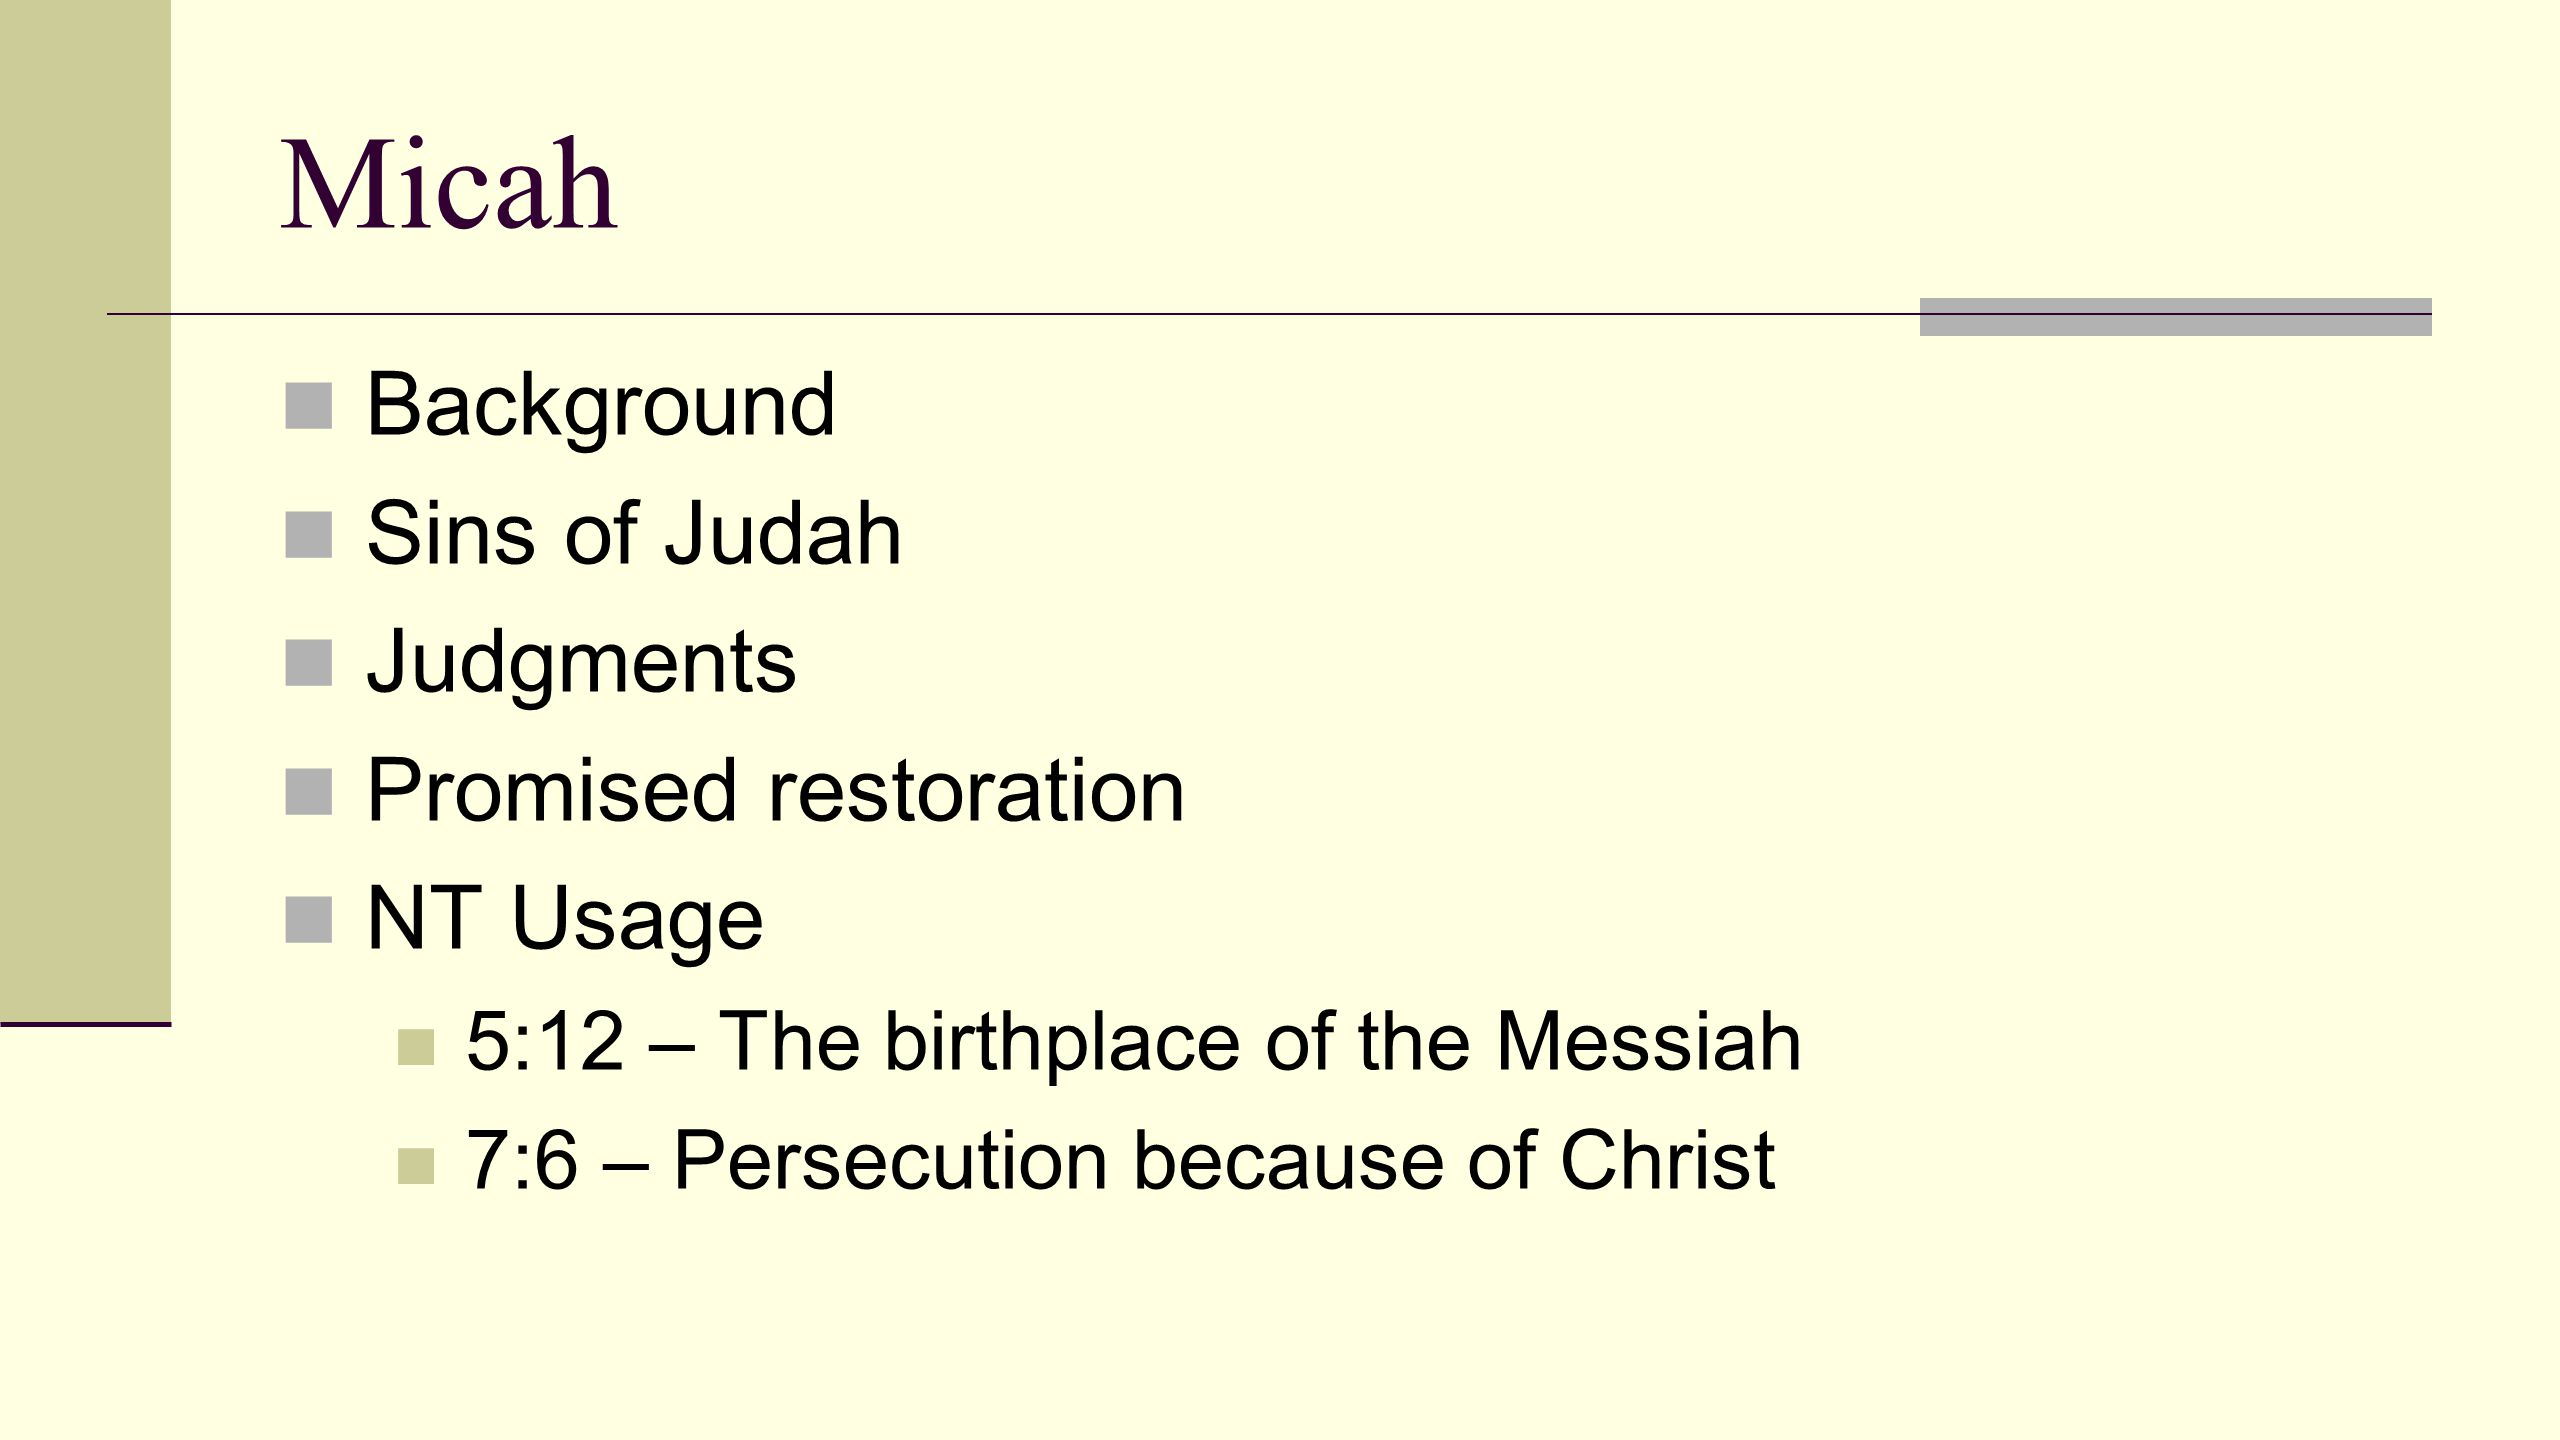 Micah Background Sins of Judah Judgments Promised restoration NT Usage 5:12 – The birthplace of the Messiah 7:6 – Persecution because of Christ